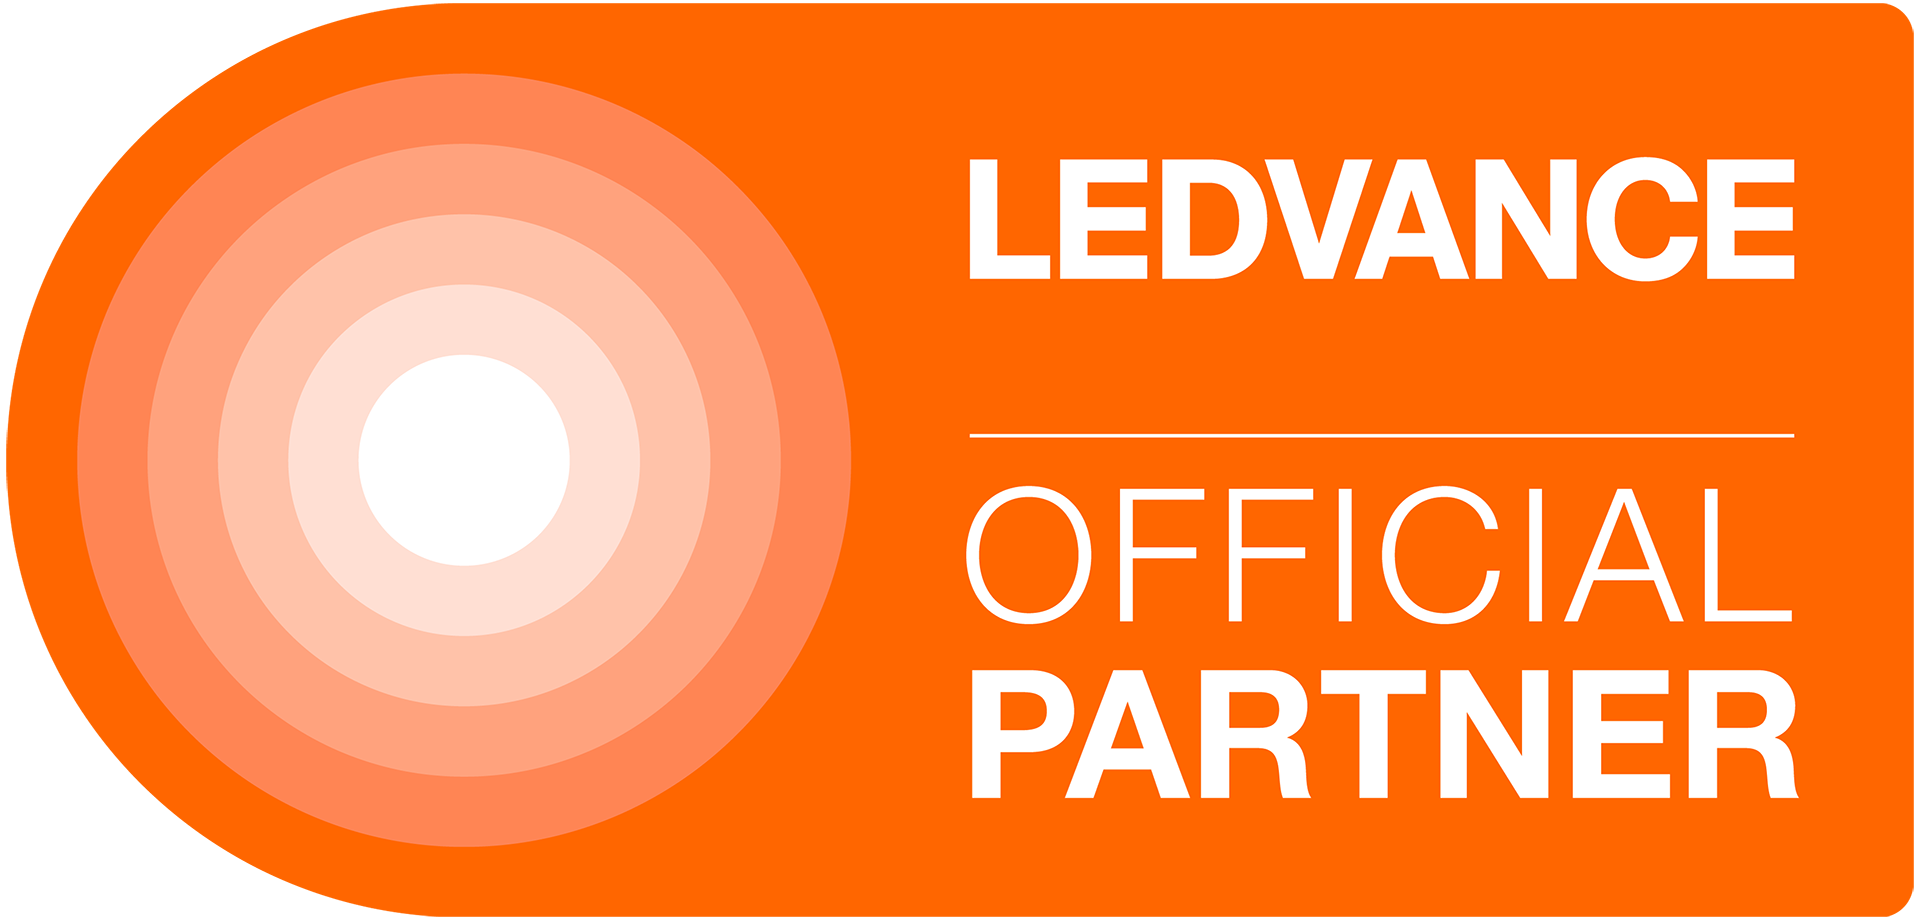 LEDVANCE official online partner